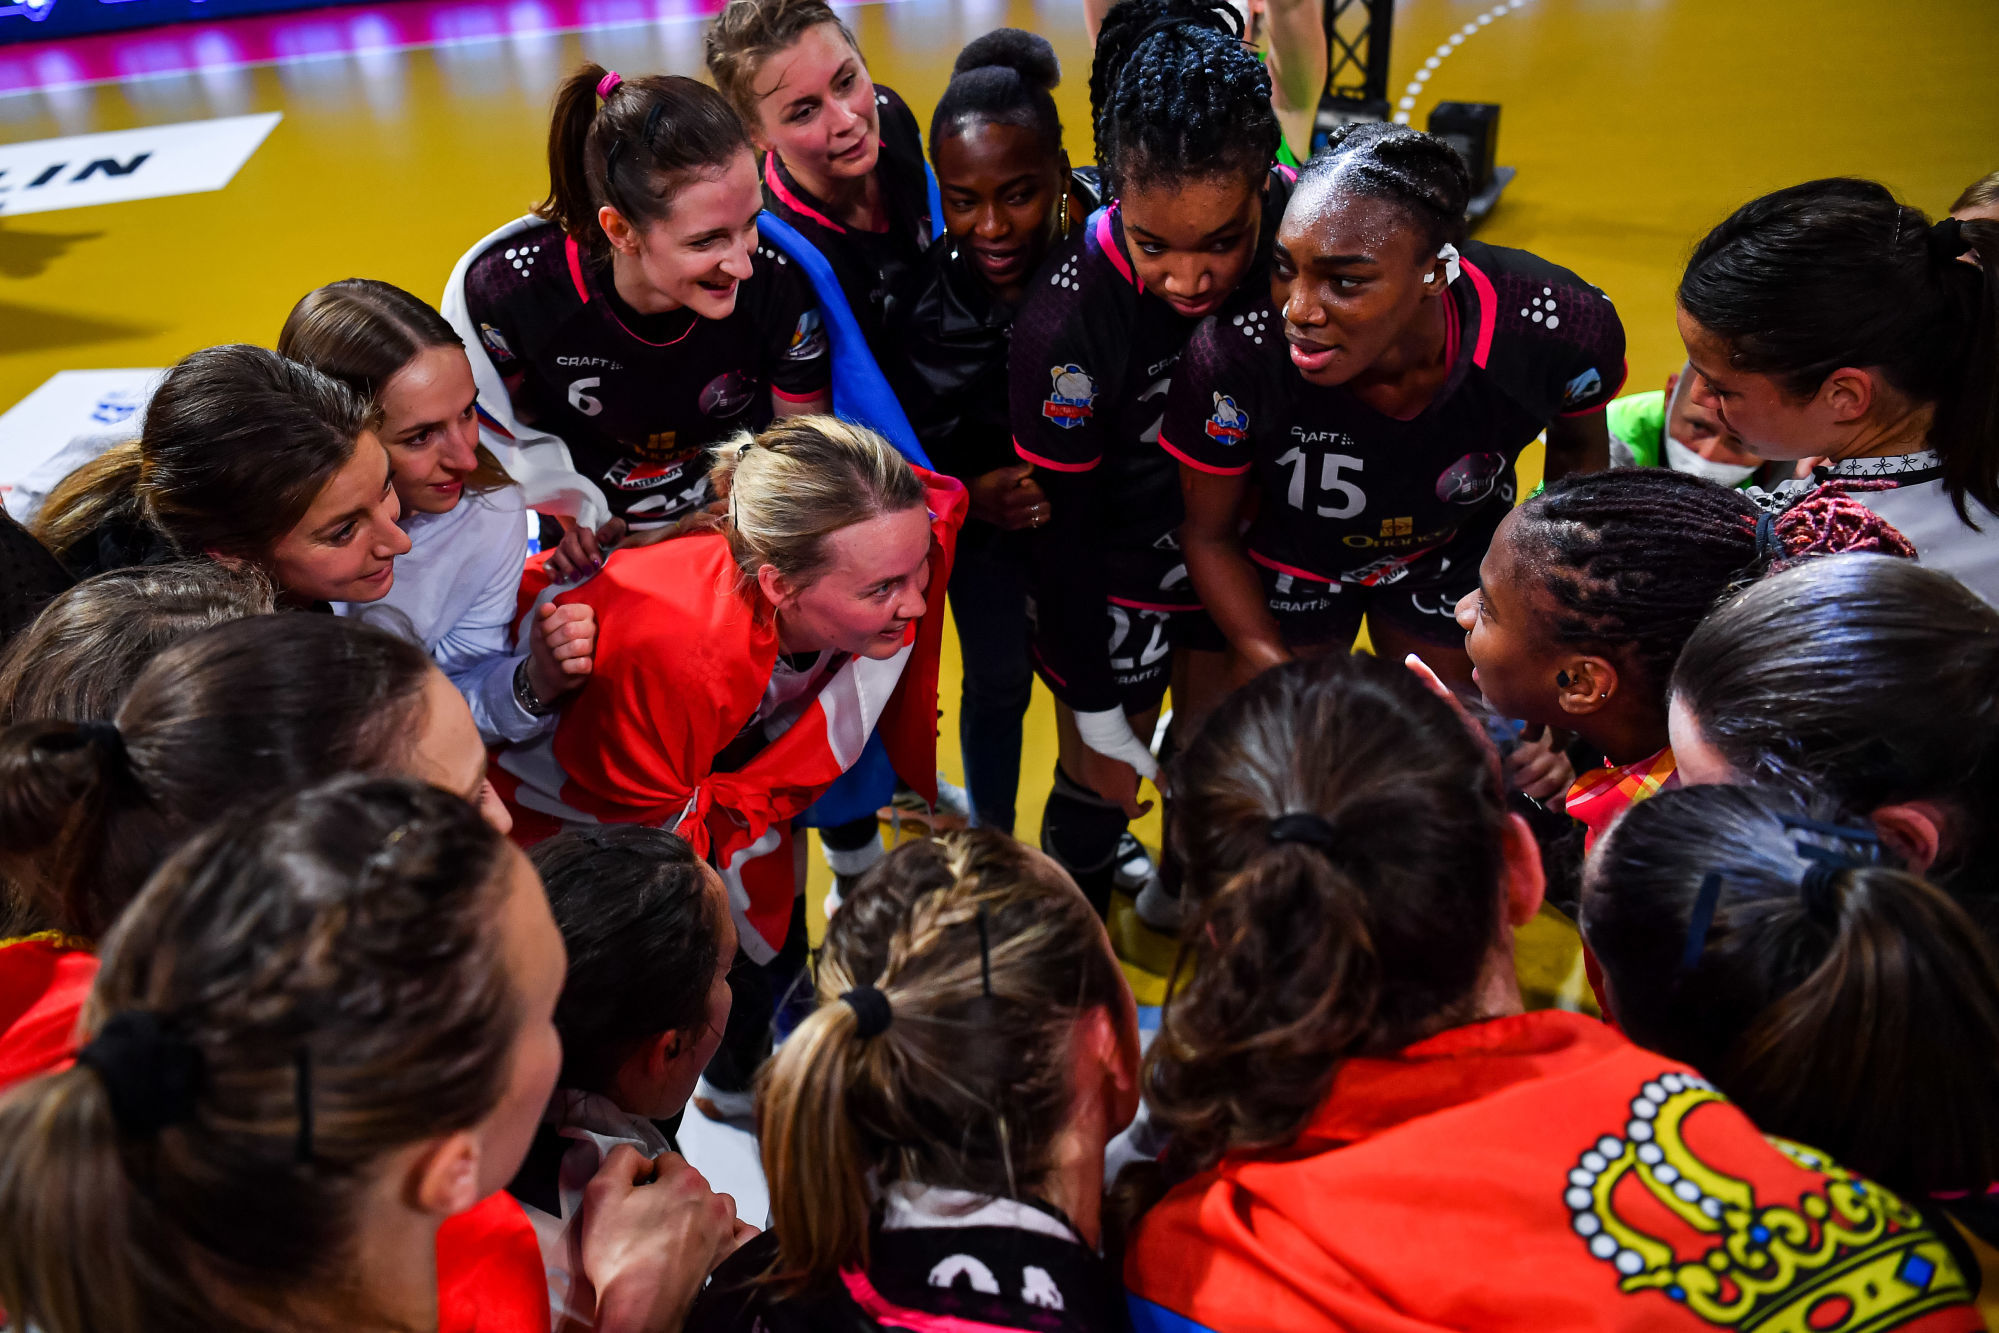 Players of Brest celebrate the victory after the women's Ligue Butagaz Energie final match between Brest and Metz at Brest Arena on May 23, 2021 in Brest, France. (Photo by Baptiste Fernandez/Icon Sport) - --- - Brest (France)